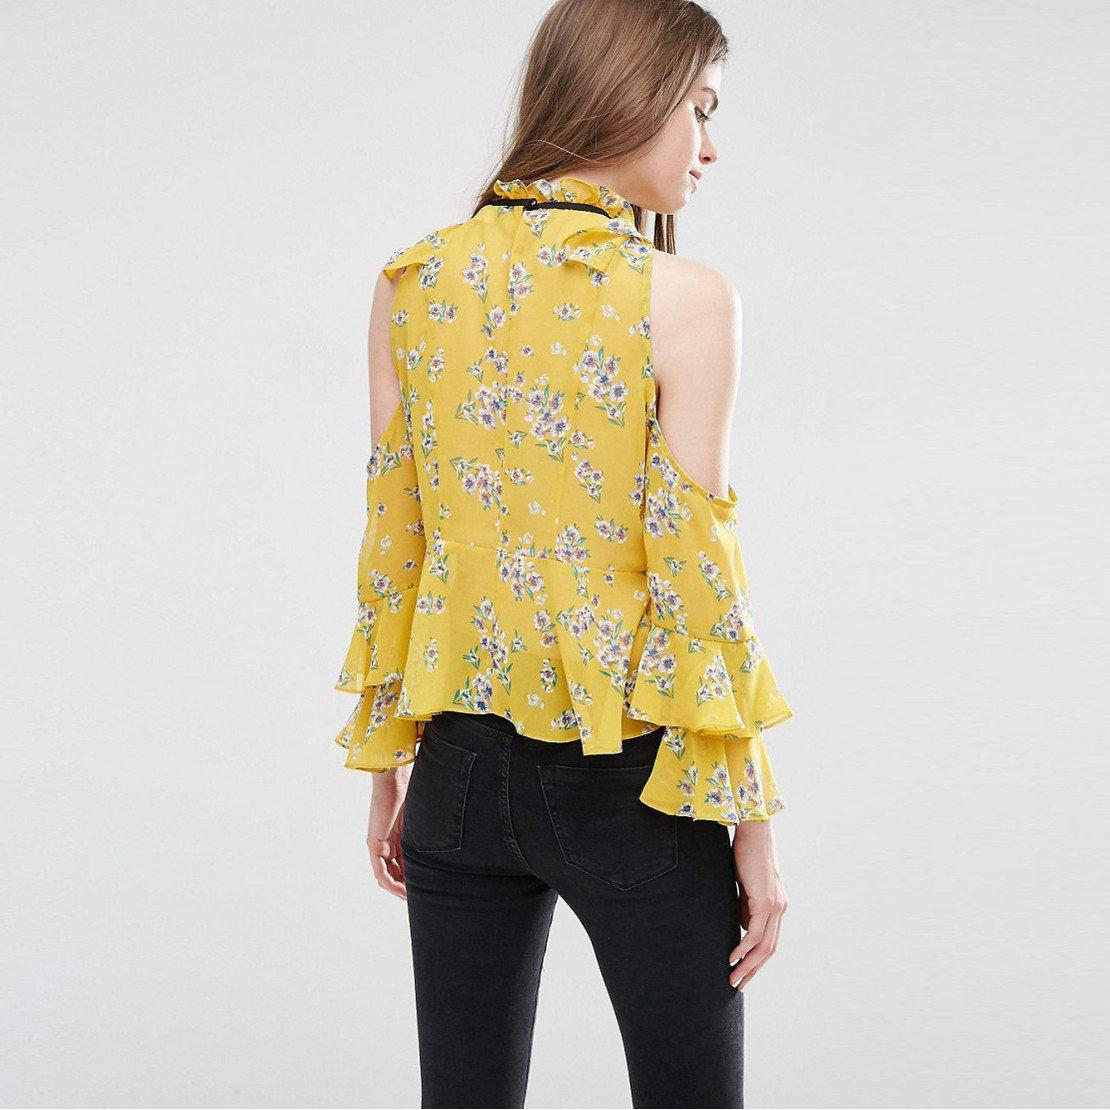 HDY Haoduoyi Autumn Women Fashion Vintage Floral Print Blouse Sexy Cold Shoulder Wraps Office Lady Slim Frill Sleeve Blouse-Blouse-SheSimplyShops